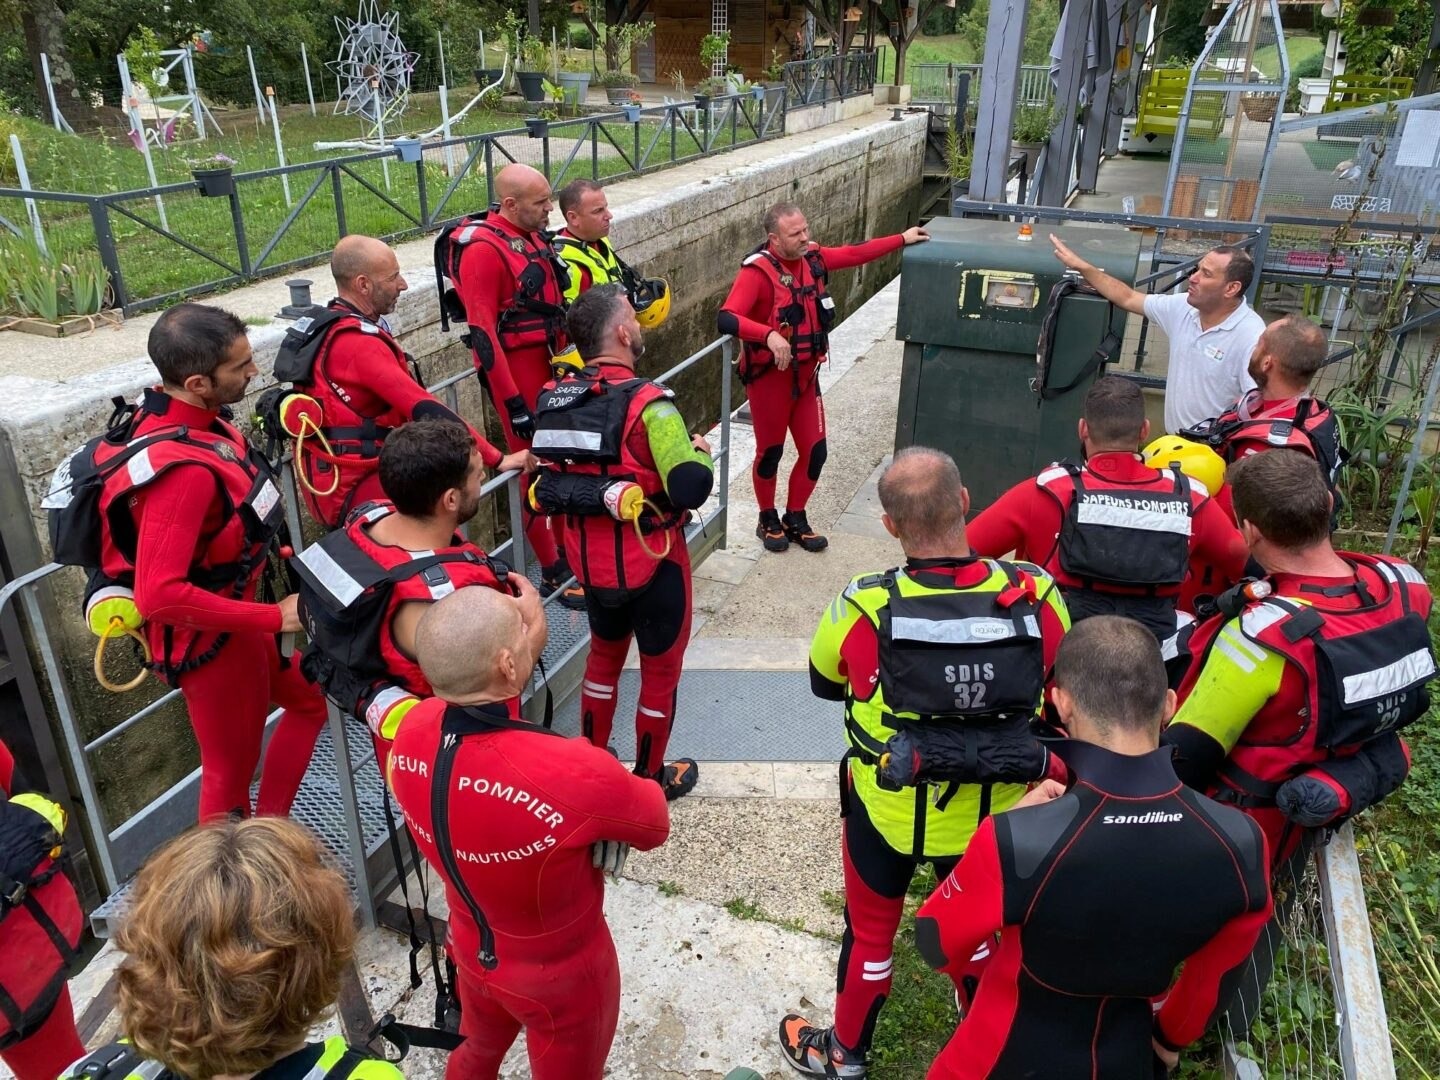 French Fire Rescue Services SDIS32 orders RescueRunner system